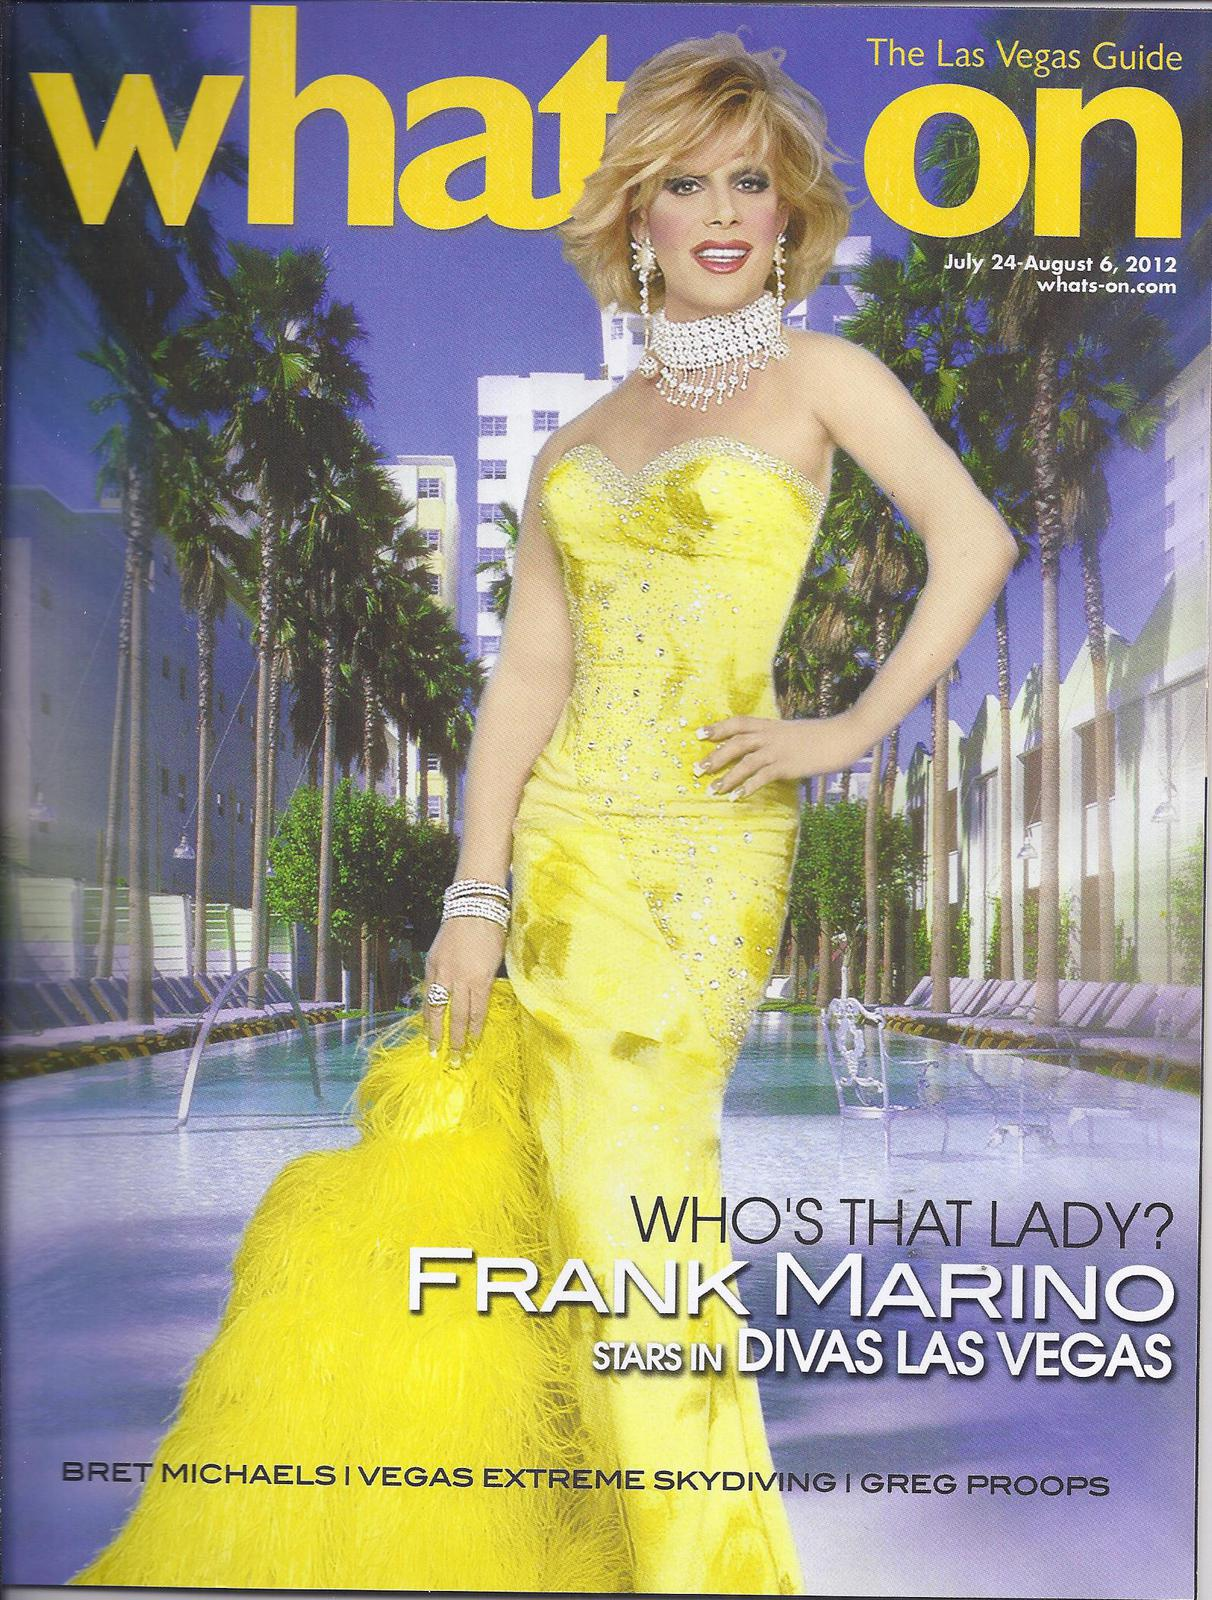 Primary image for FRANK MARINO / BRET MICHAELS / GREG PROOPS  on What's On Vegas Magazine 2012